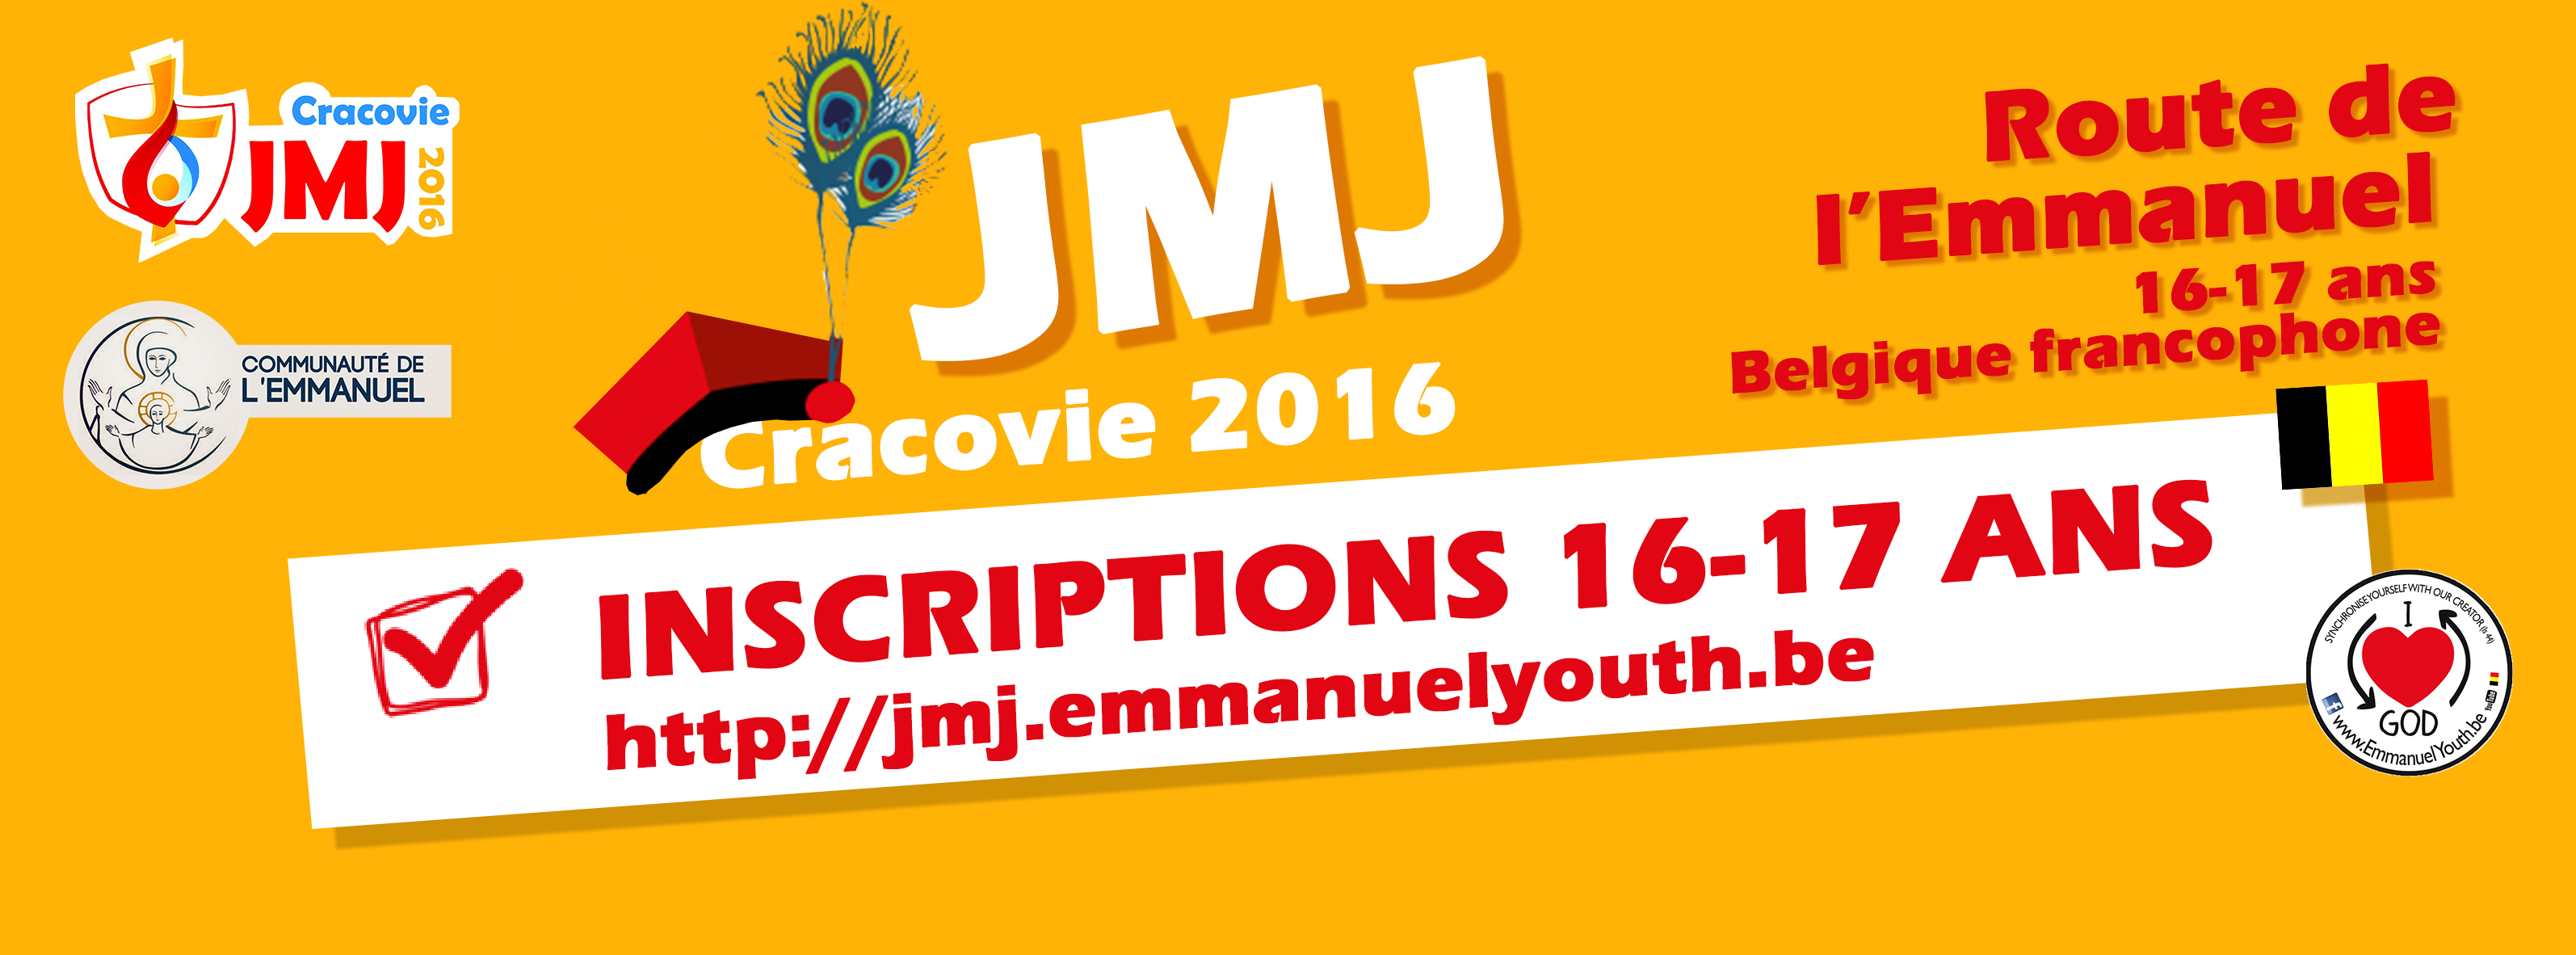 Banner-JMJ2016-inscriptions-route-1617